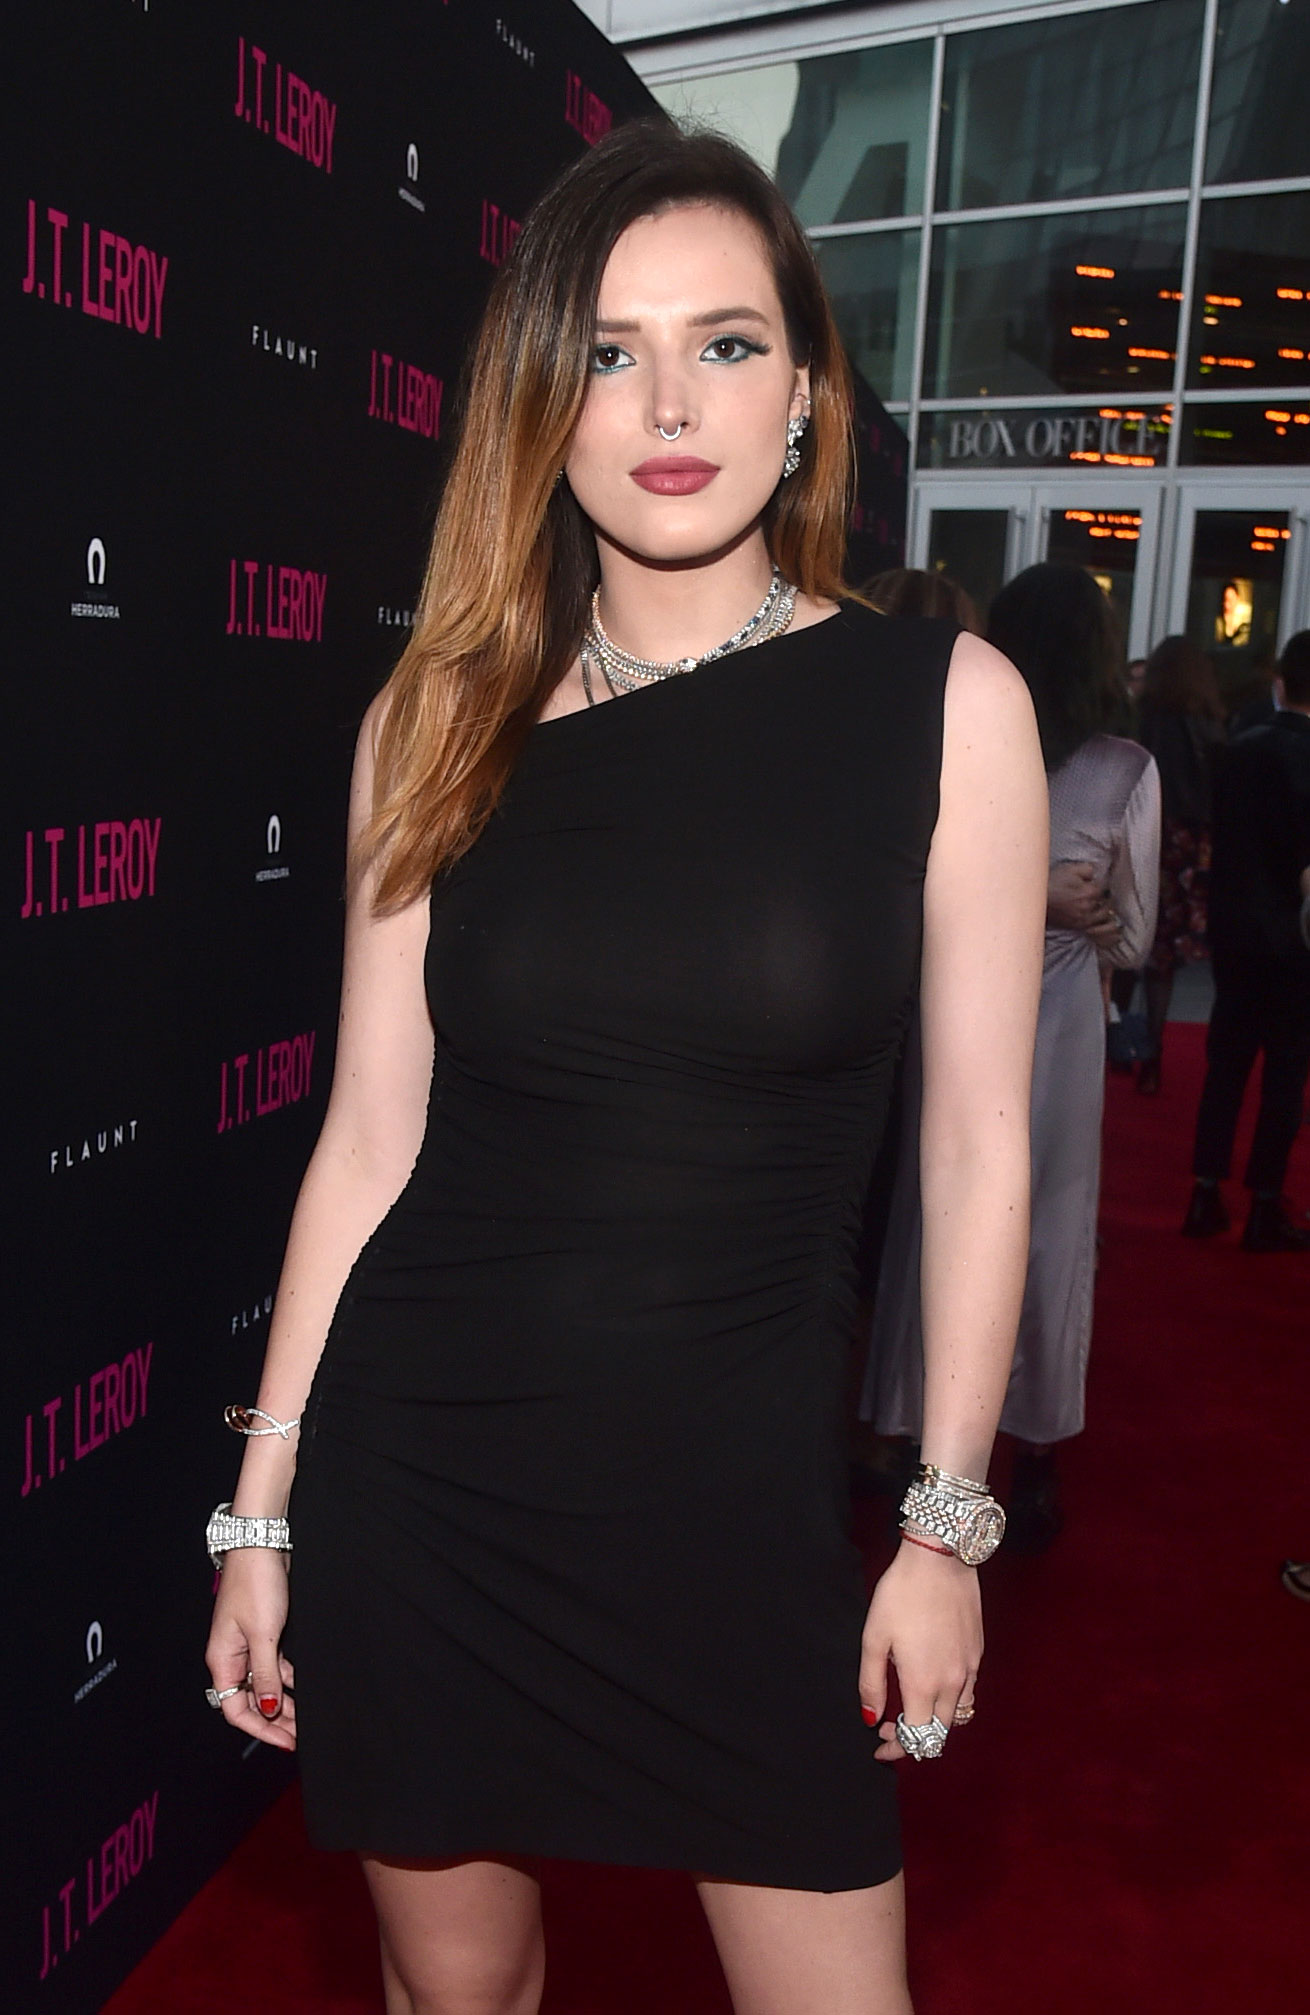 "Bella Thorne Says Police Are 'Getting Closer' to Finding Hacker After Nude Photo Ordeal Black Dress LA premiere of Universal Pictures' ""J.T. Leroy"" - Bella Thorne attends the LA premiere of Universal Pictures' ""J.T. Leroy"" at ArcLight Hollywood on April 24, 2019 in Hollywood, California."